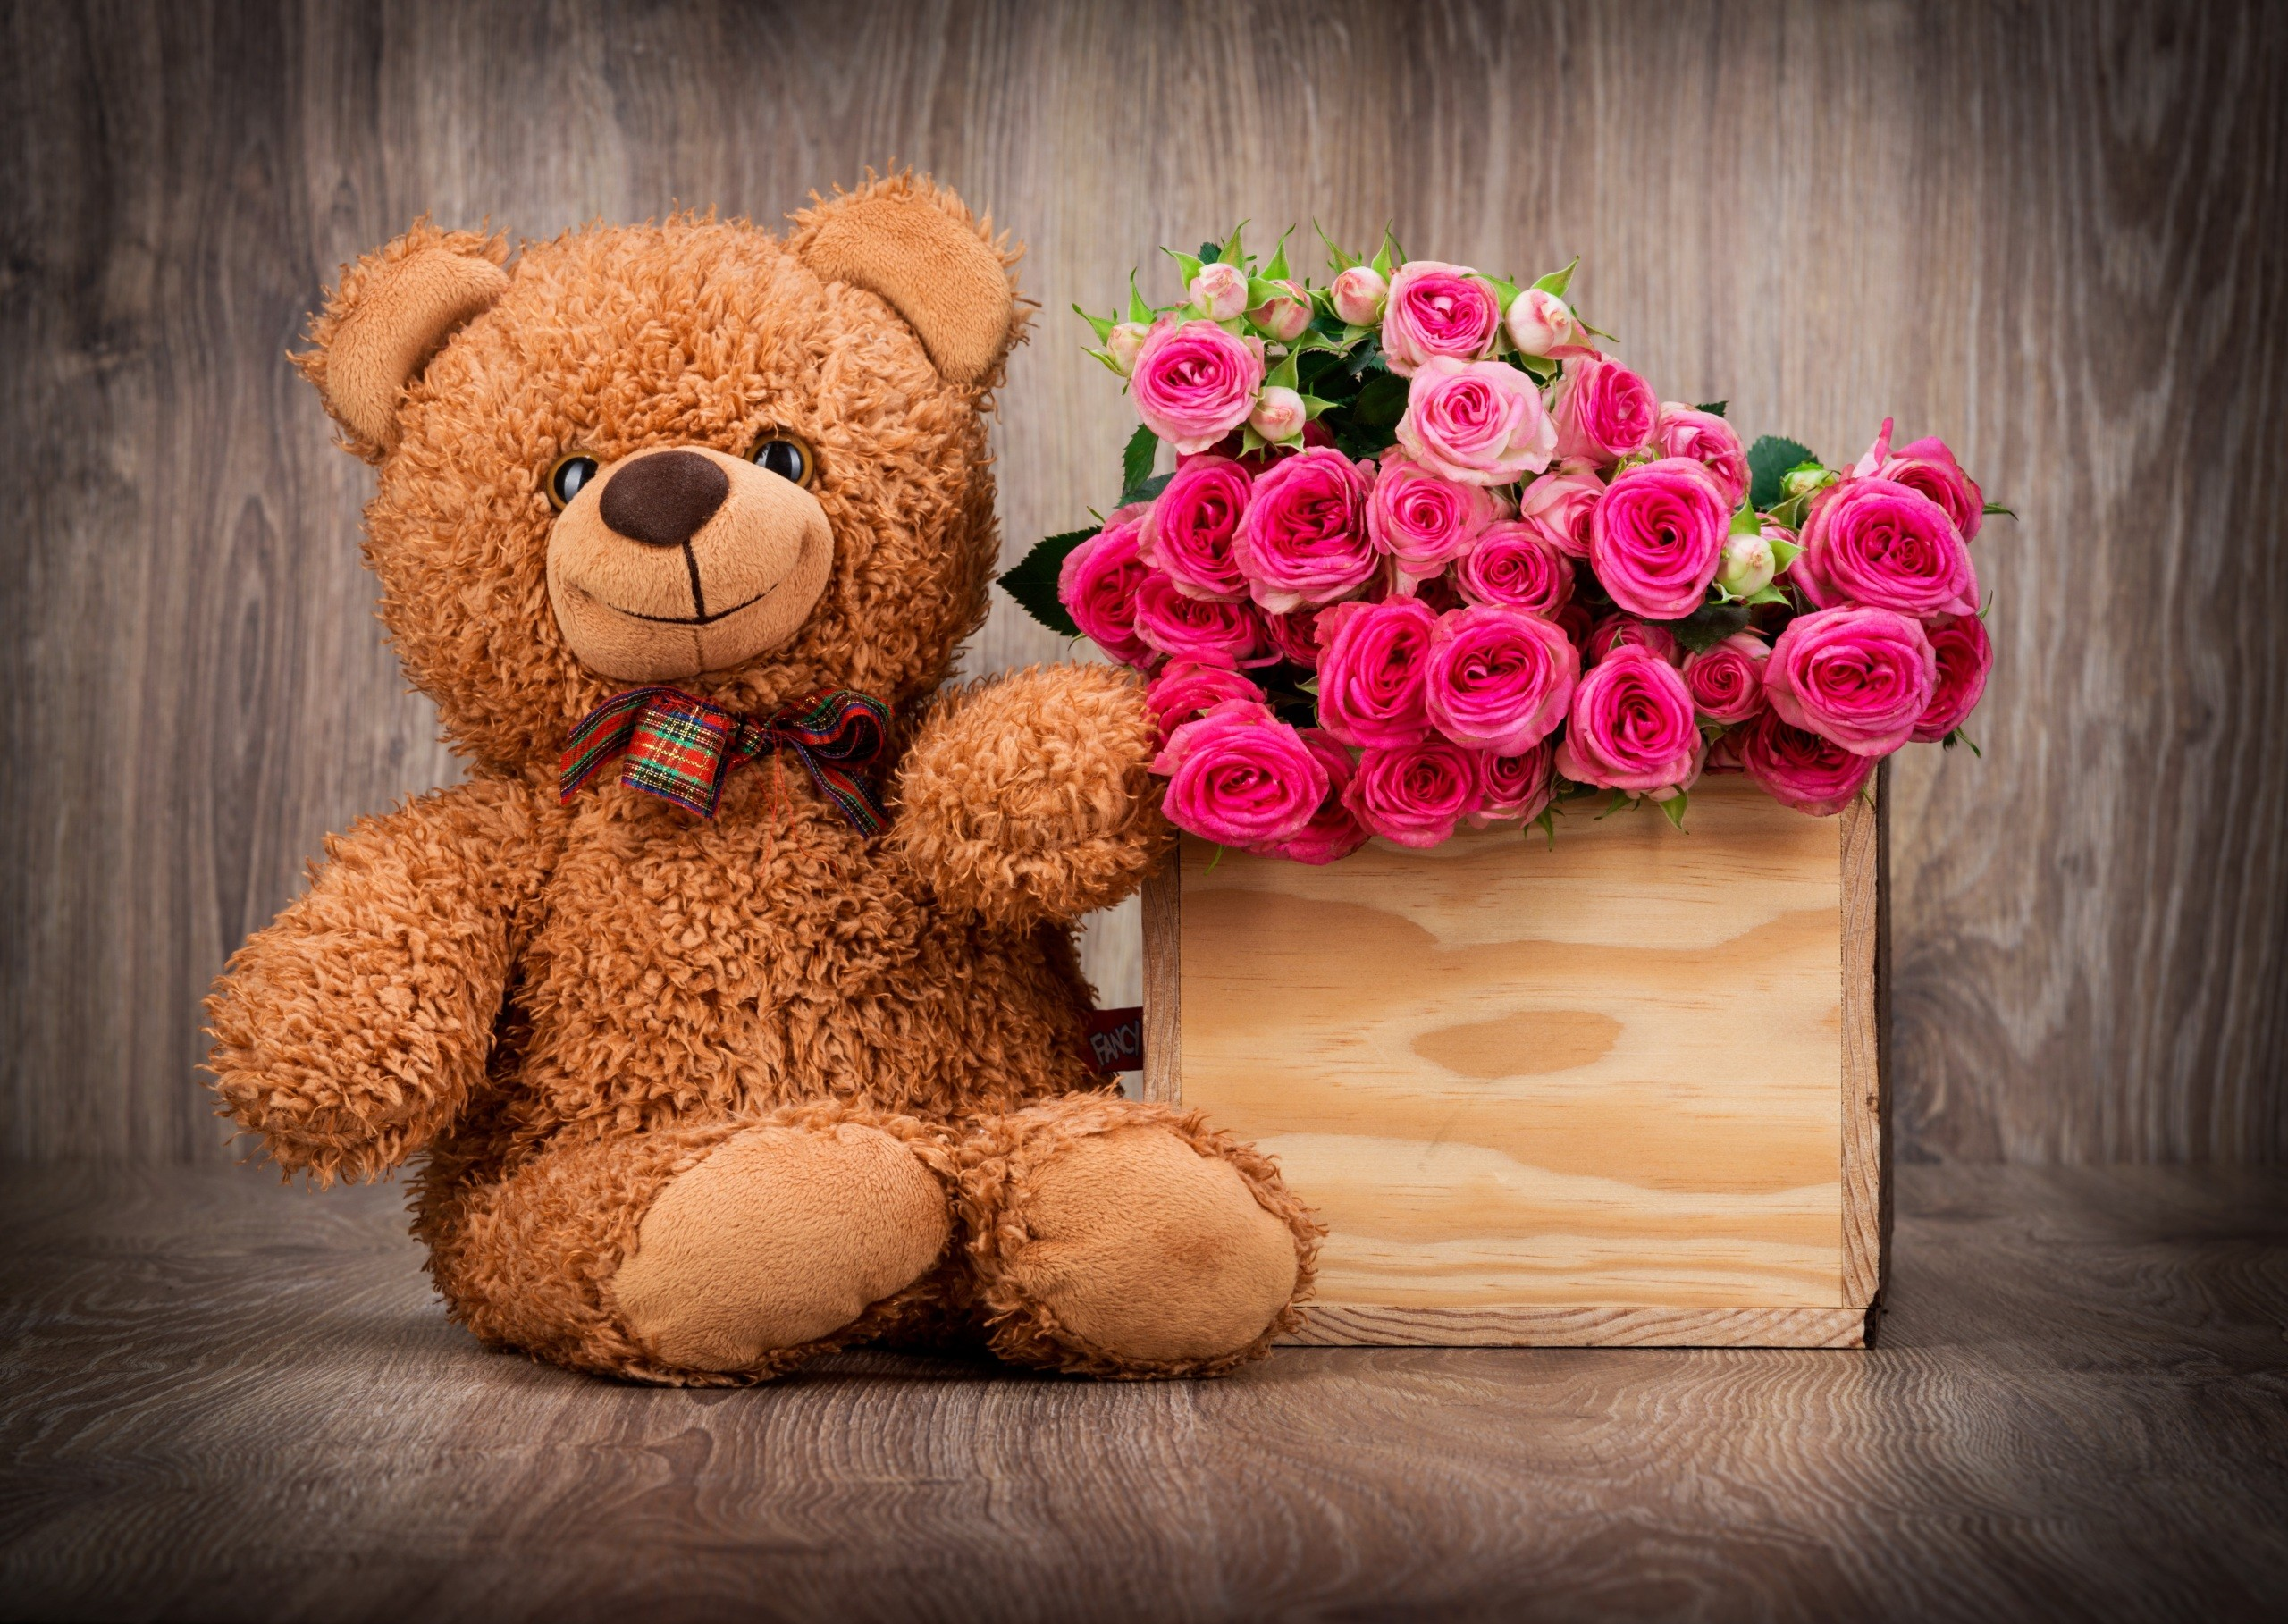 Cute Teddy Bear Wallpaper with Pink Roses in Box | HD Wallpapers for .